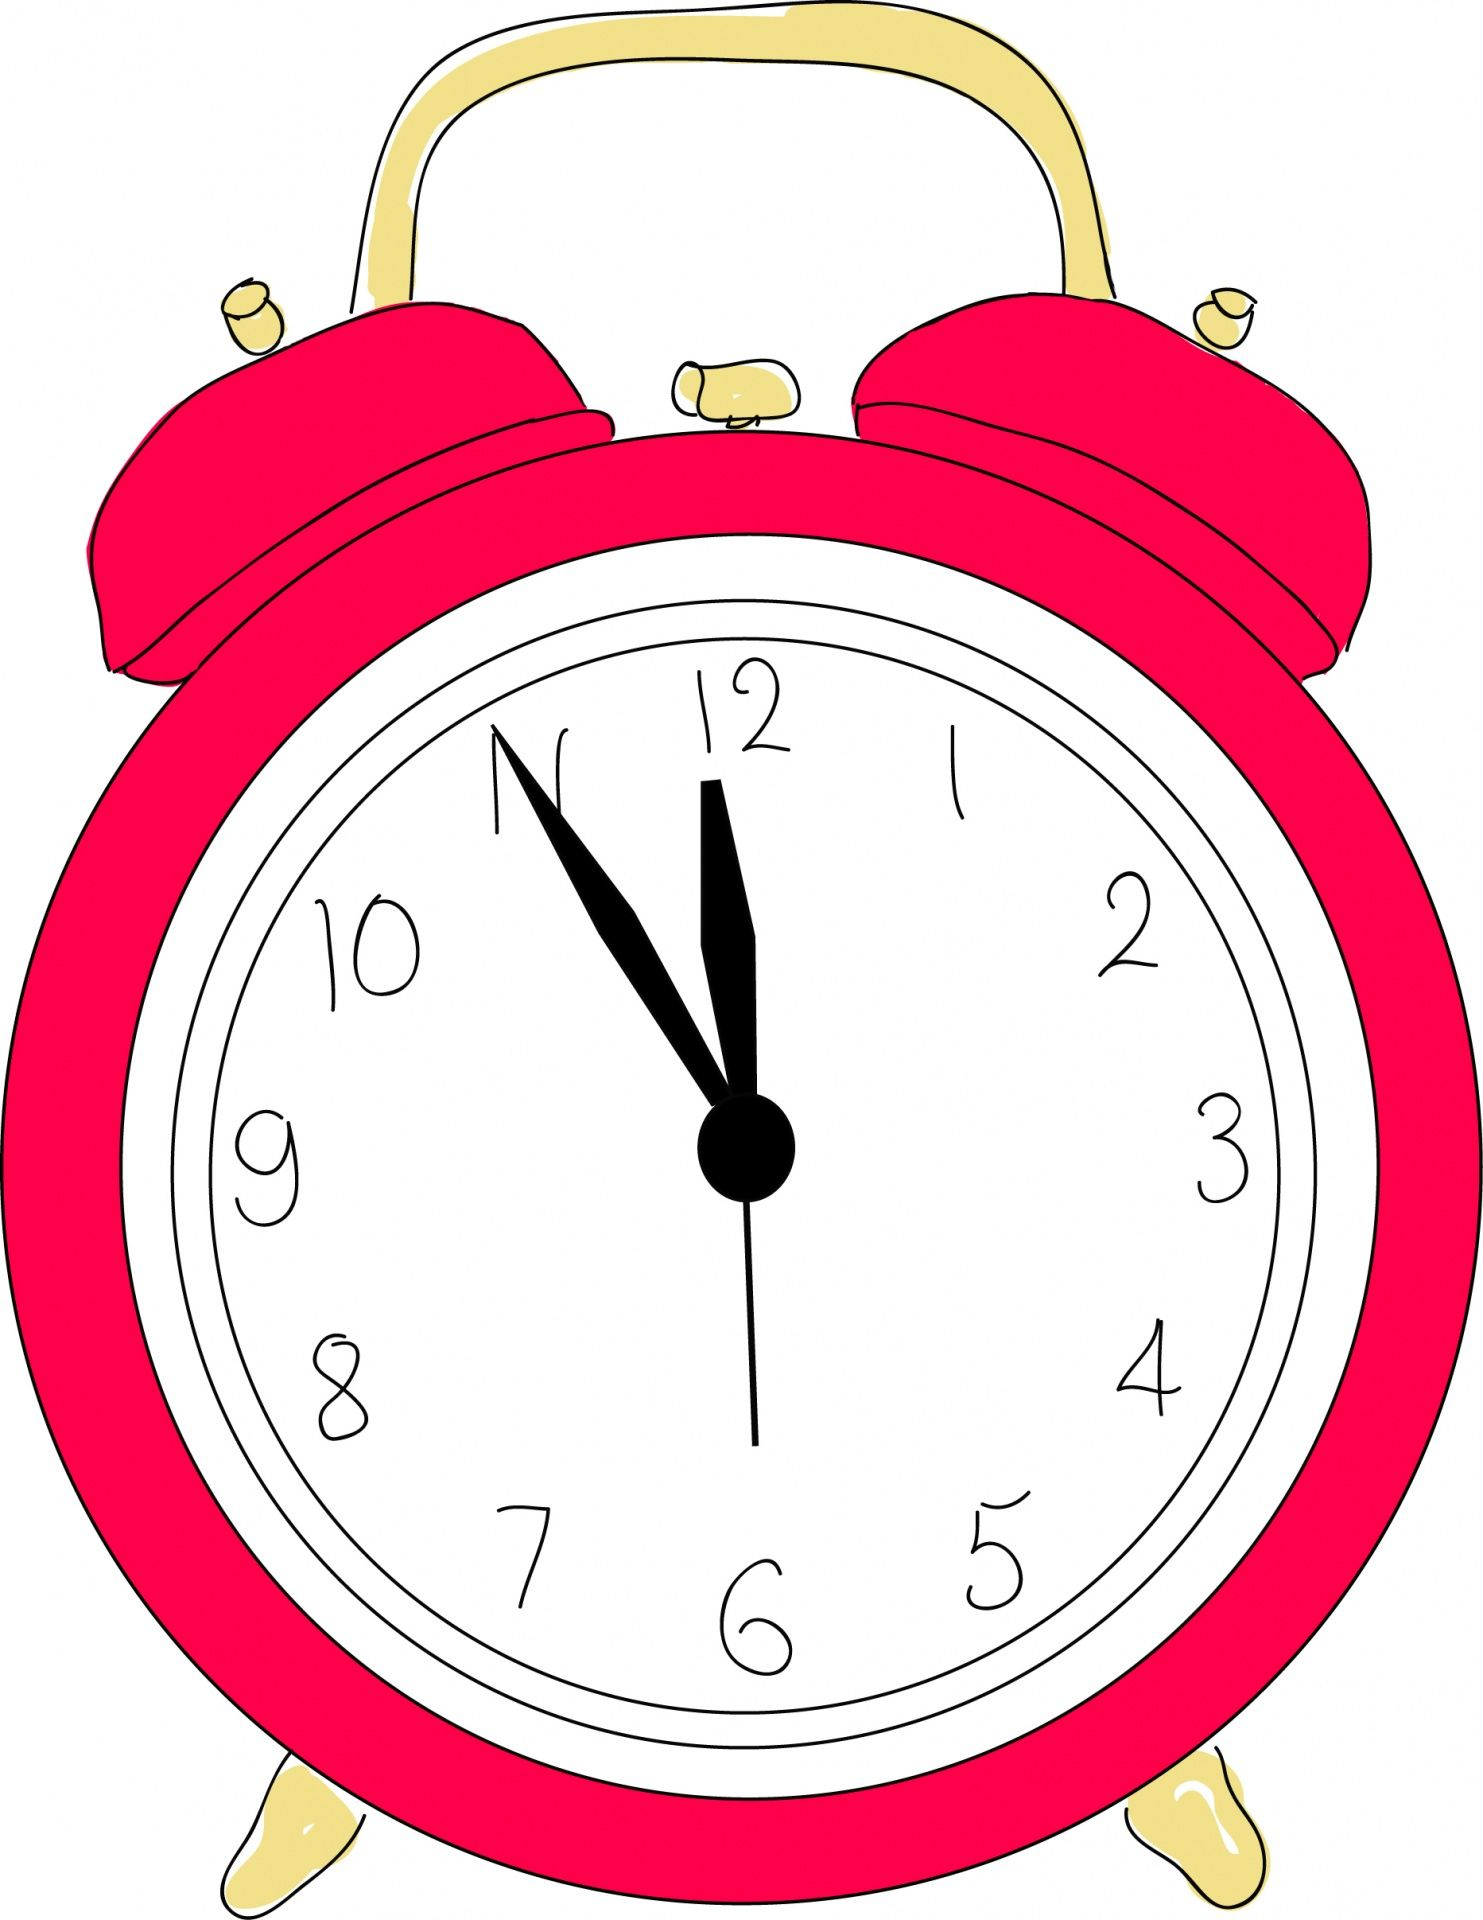 alarm clock clipart cliparts pinterest alarm clocks clocks rh pinterest com alarm clipart free alarm clock clipart black and white